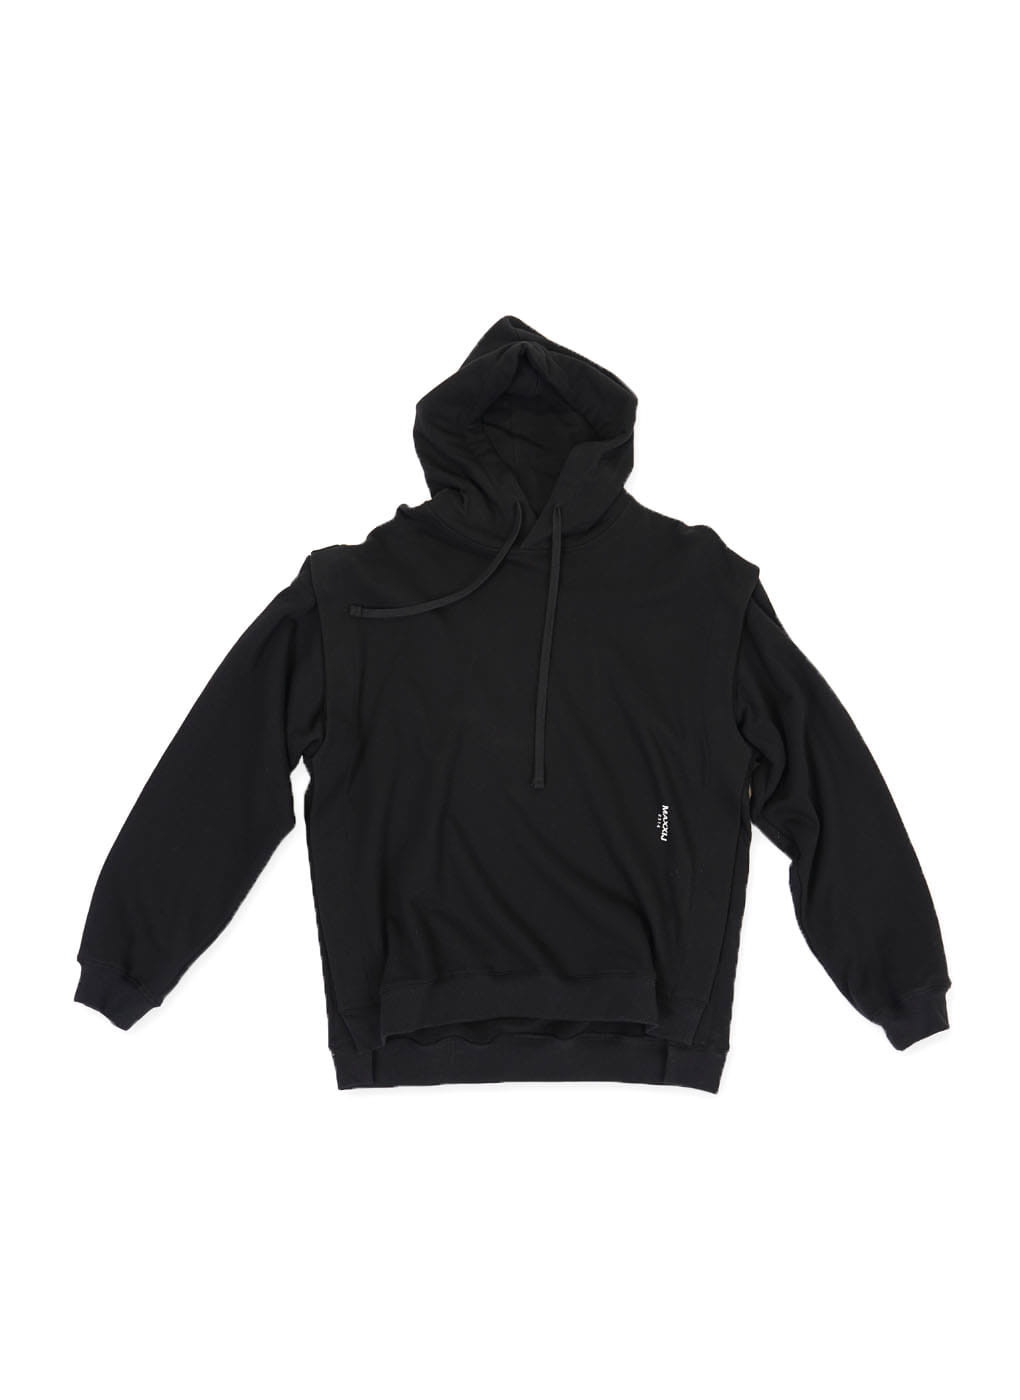 Black Detachable Sleeve Hoodie Sweatshirt